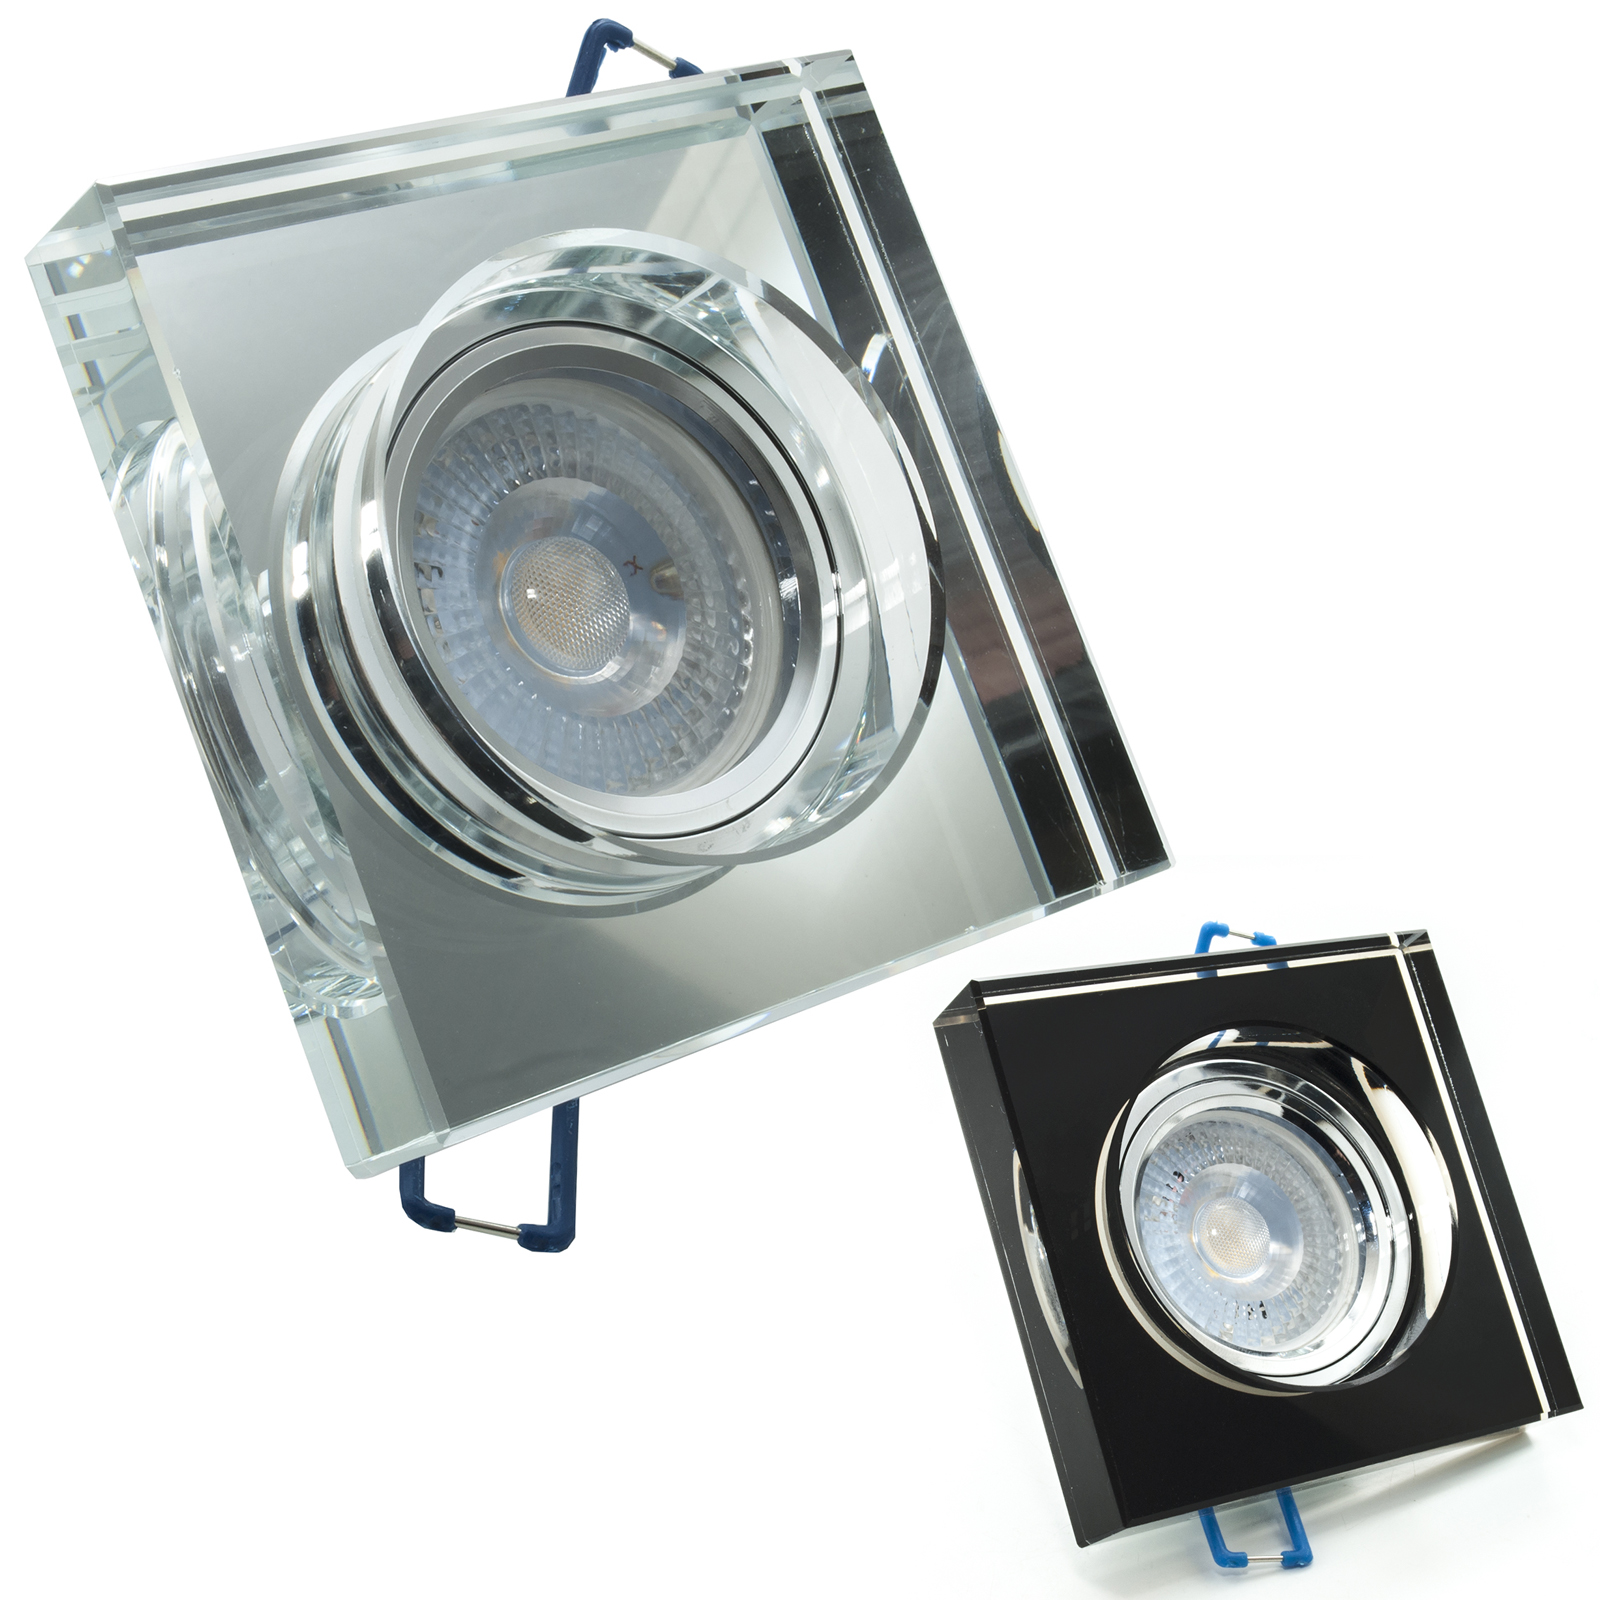 LED spotlight 5W GU10 recessed mirrored glass the light spot angle of 38 degrees hole 6cm